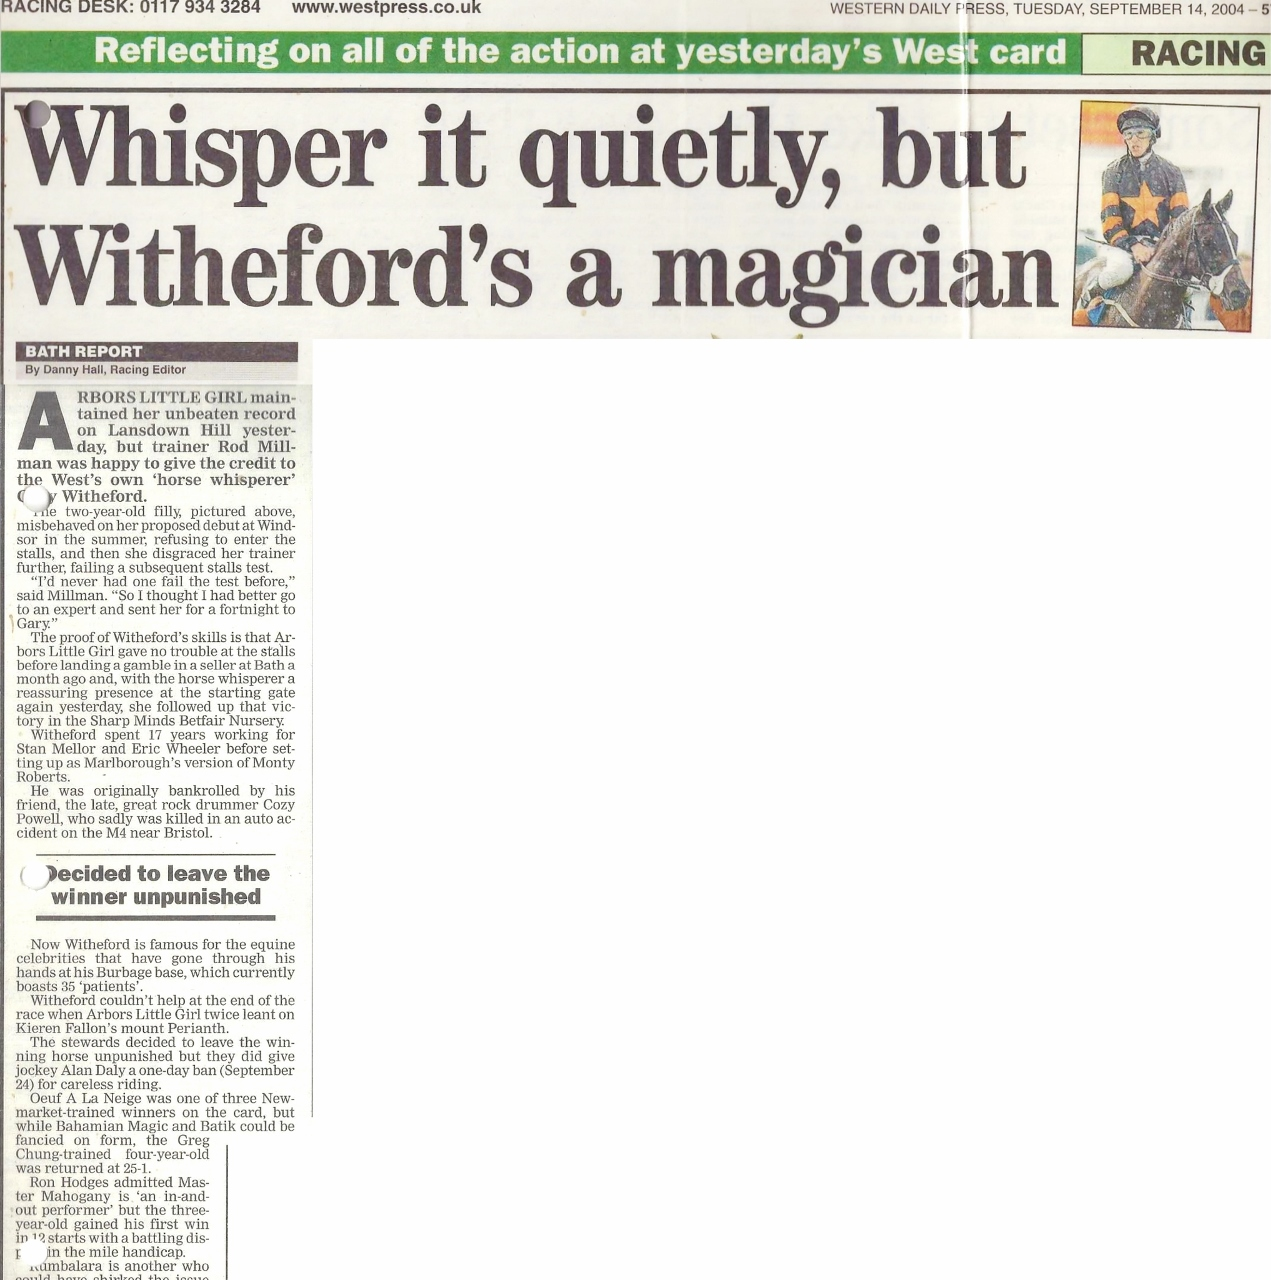 September 2004 - Western Daily Press